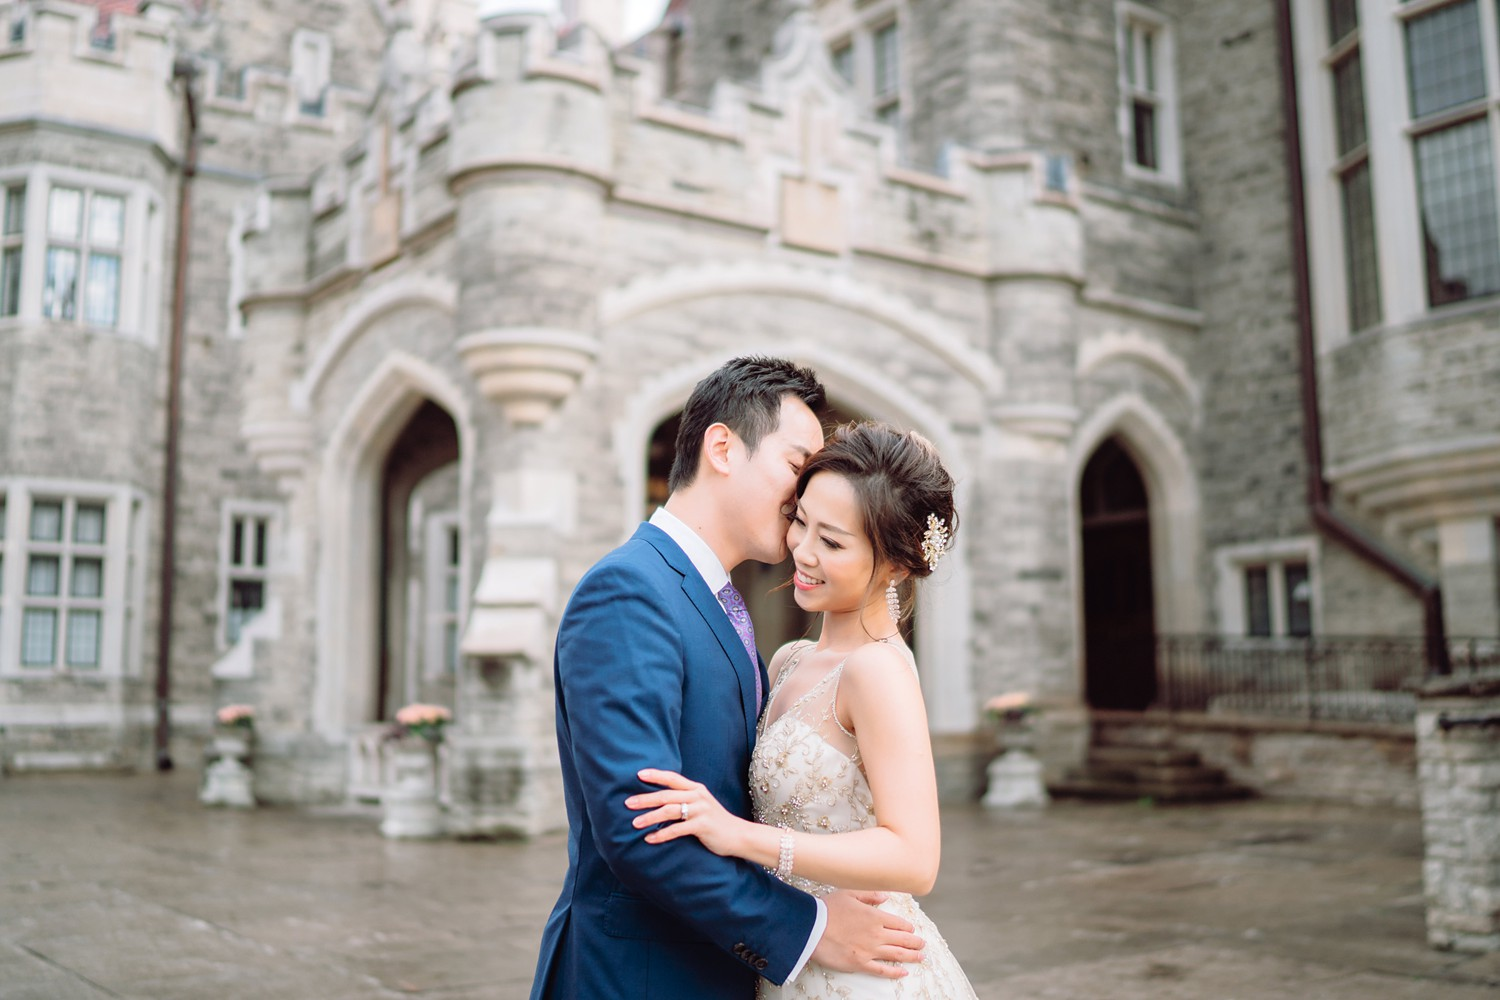 Rainy Wedding Day Bride and Groom at Castle Casa Loma Wedding Toronto Wedding Photographer